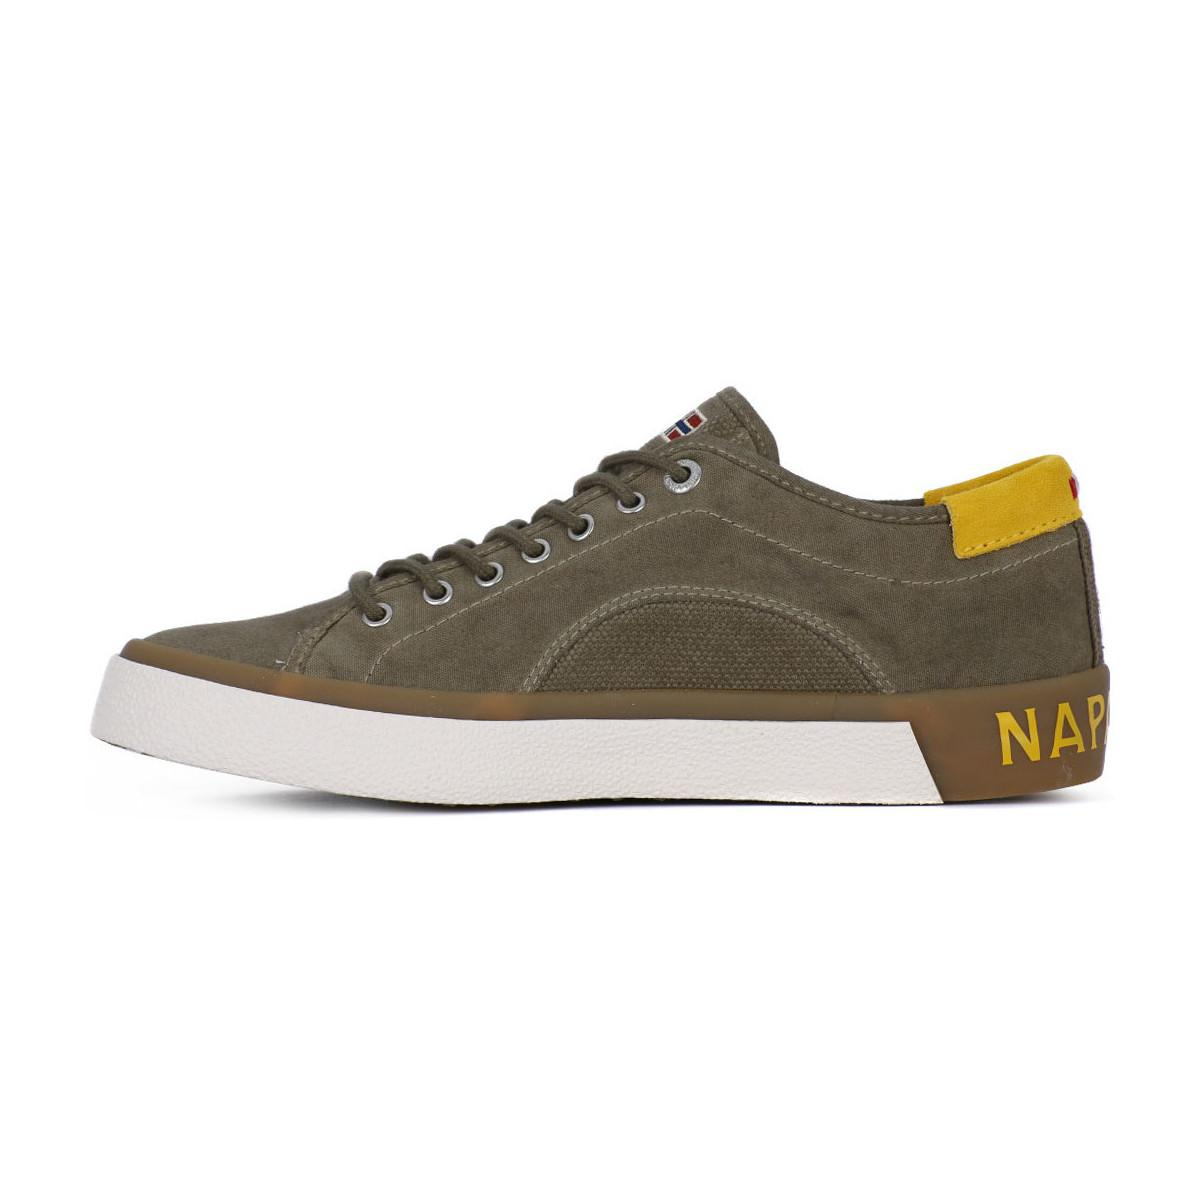 Napapijri N83 Jakob Khaki Men's Shoes (trainers) In Brown for Men